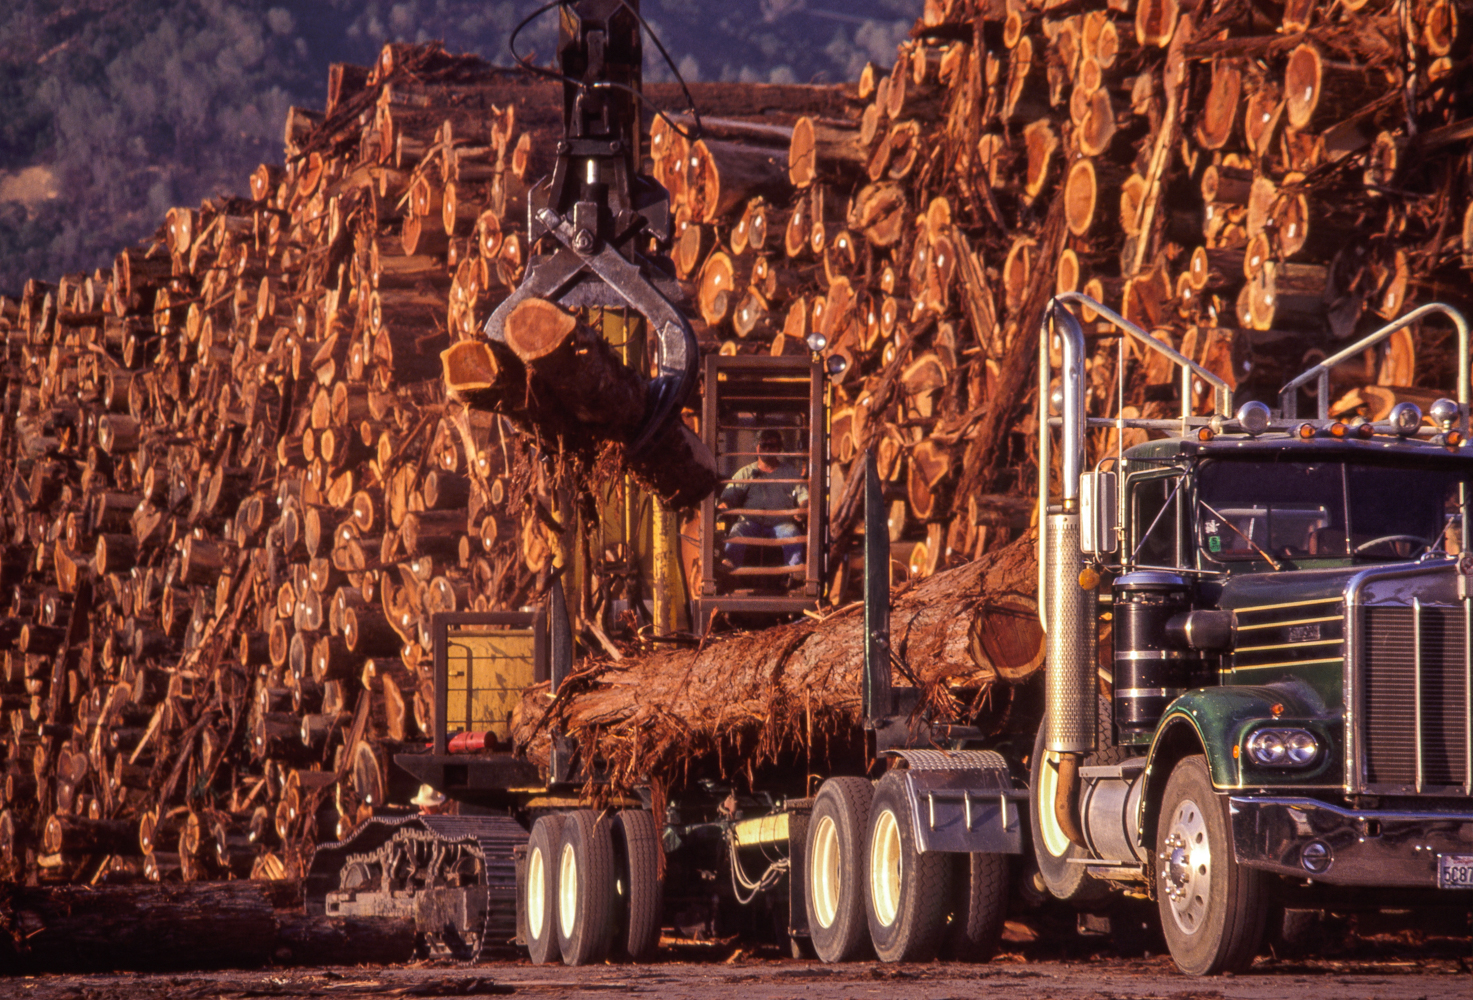 Logging and Milling Operation, Scotia, CaliforniaRedwood logs are unloaded from a hauler and stacked in the log yard at a Scotia, California, logging and milling operation.